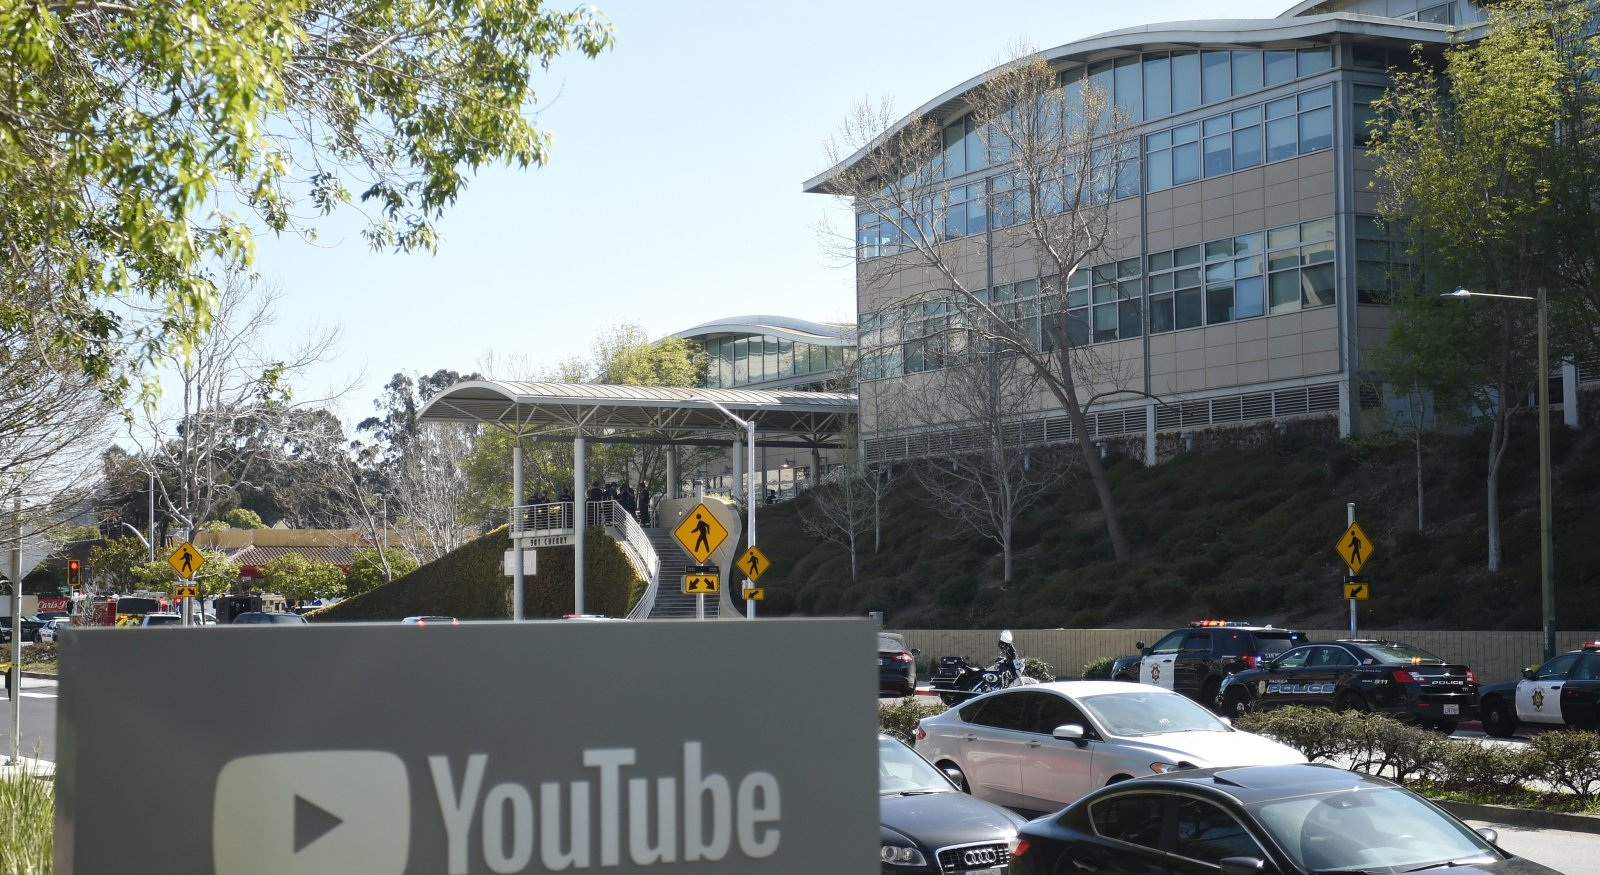 """YouTube's headquarters office is seen with police activity during an active shooter situation in San Bruno, California on April 03, 2018.                       Gunshots erupted at YouTube's offices in California Tuesday, sparking a panicked escape by employees and a massive police response, before the shooter -- a woman -- apparently committed suicide.Police said three people had been hospitalized with gunshot injuries following the shooting in the city of San Bruno, and that a female suspect was found dead at the scene. """"We have one subject who is deceased inside the building with a self-inflicted wound,"""" San Bruno Police Chief Ed Barberini told reporters. """"At this time, we believe it to be the shooter.""""  / AFP PHOTO / JOSH EDELSON        (Photo credit should read JOSH EDELSON/AFP/Getty Images)"""